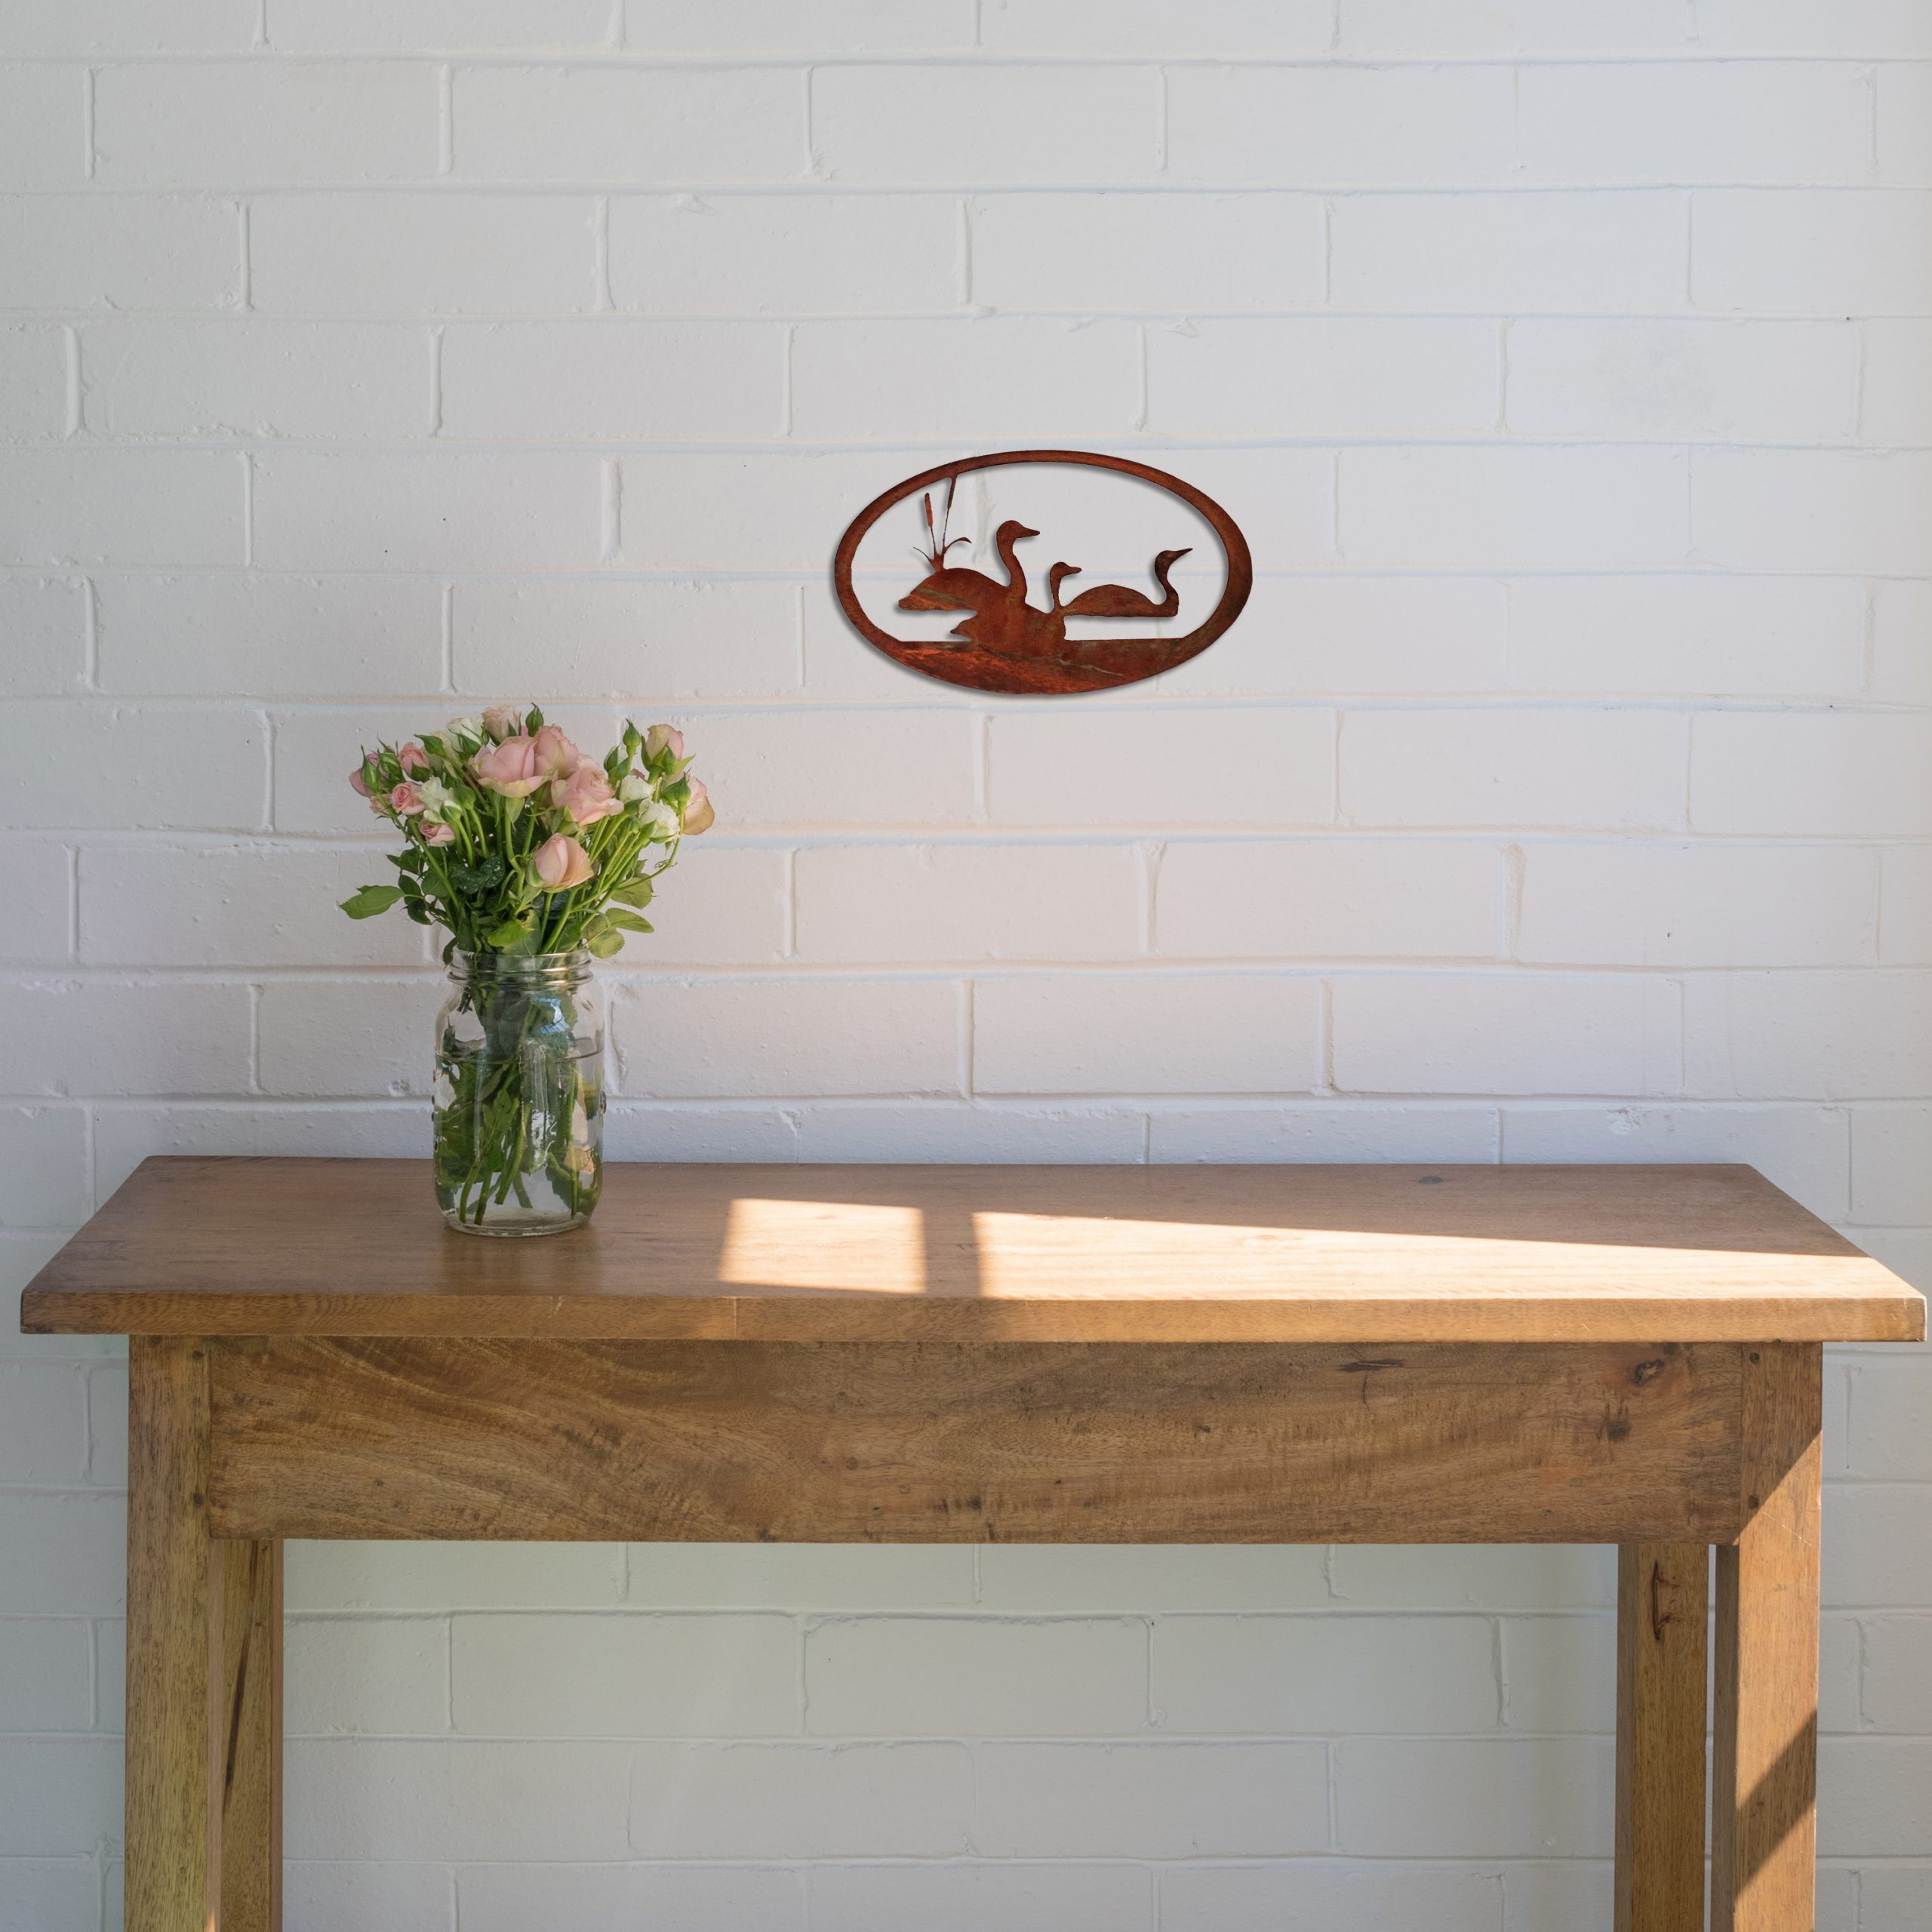 rust-loon-oval-over-table-scaled